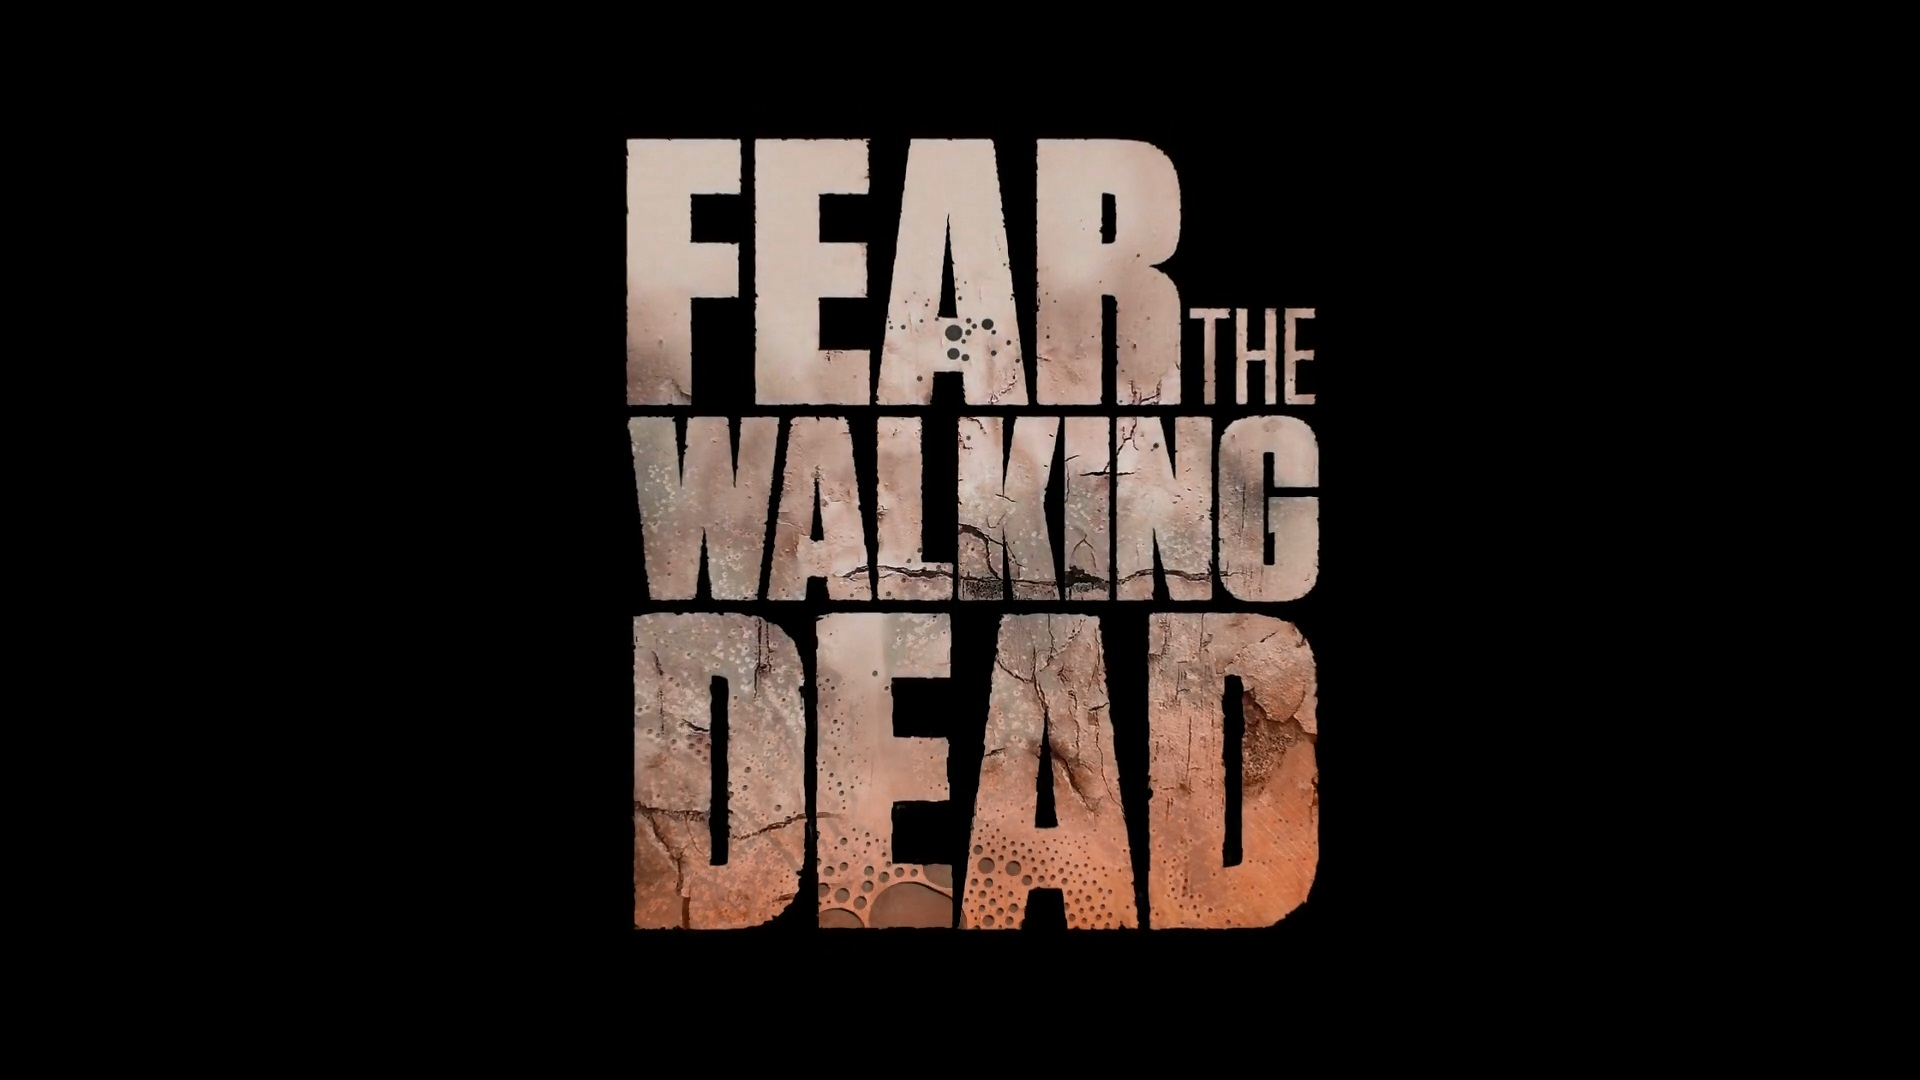 Fear Walking Dead 25444